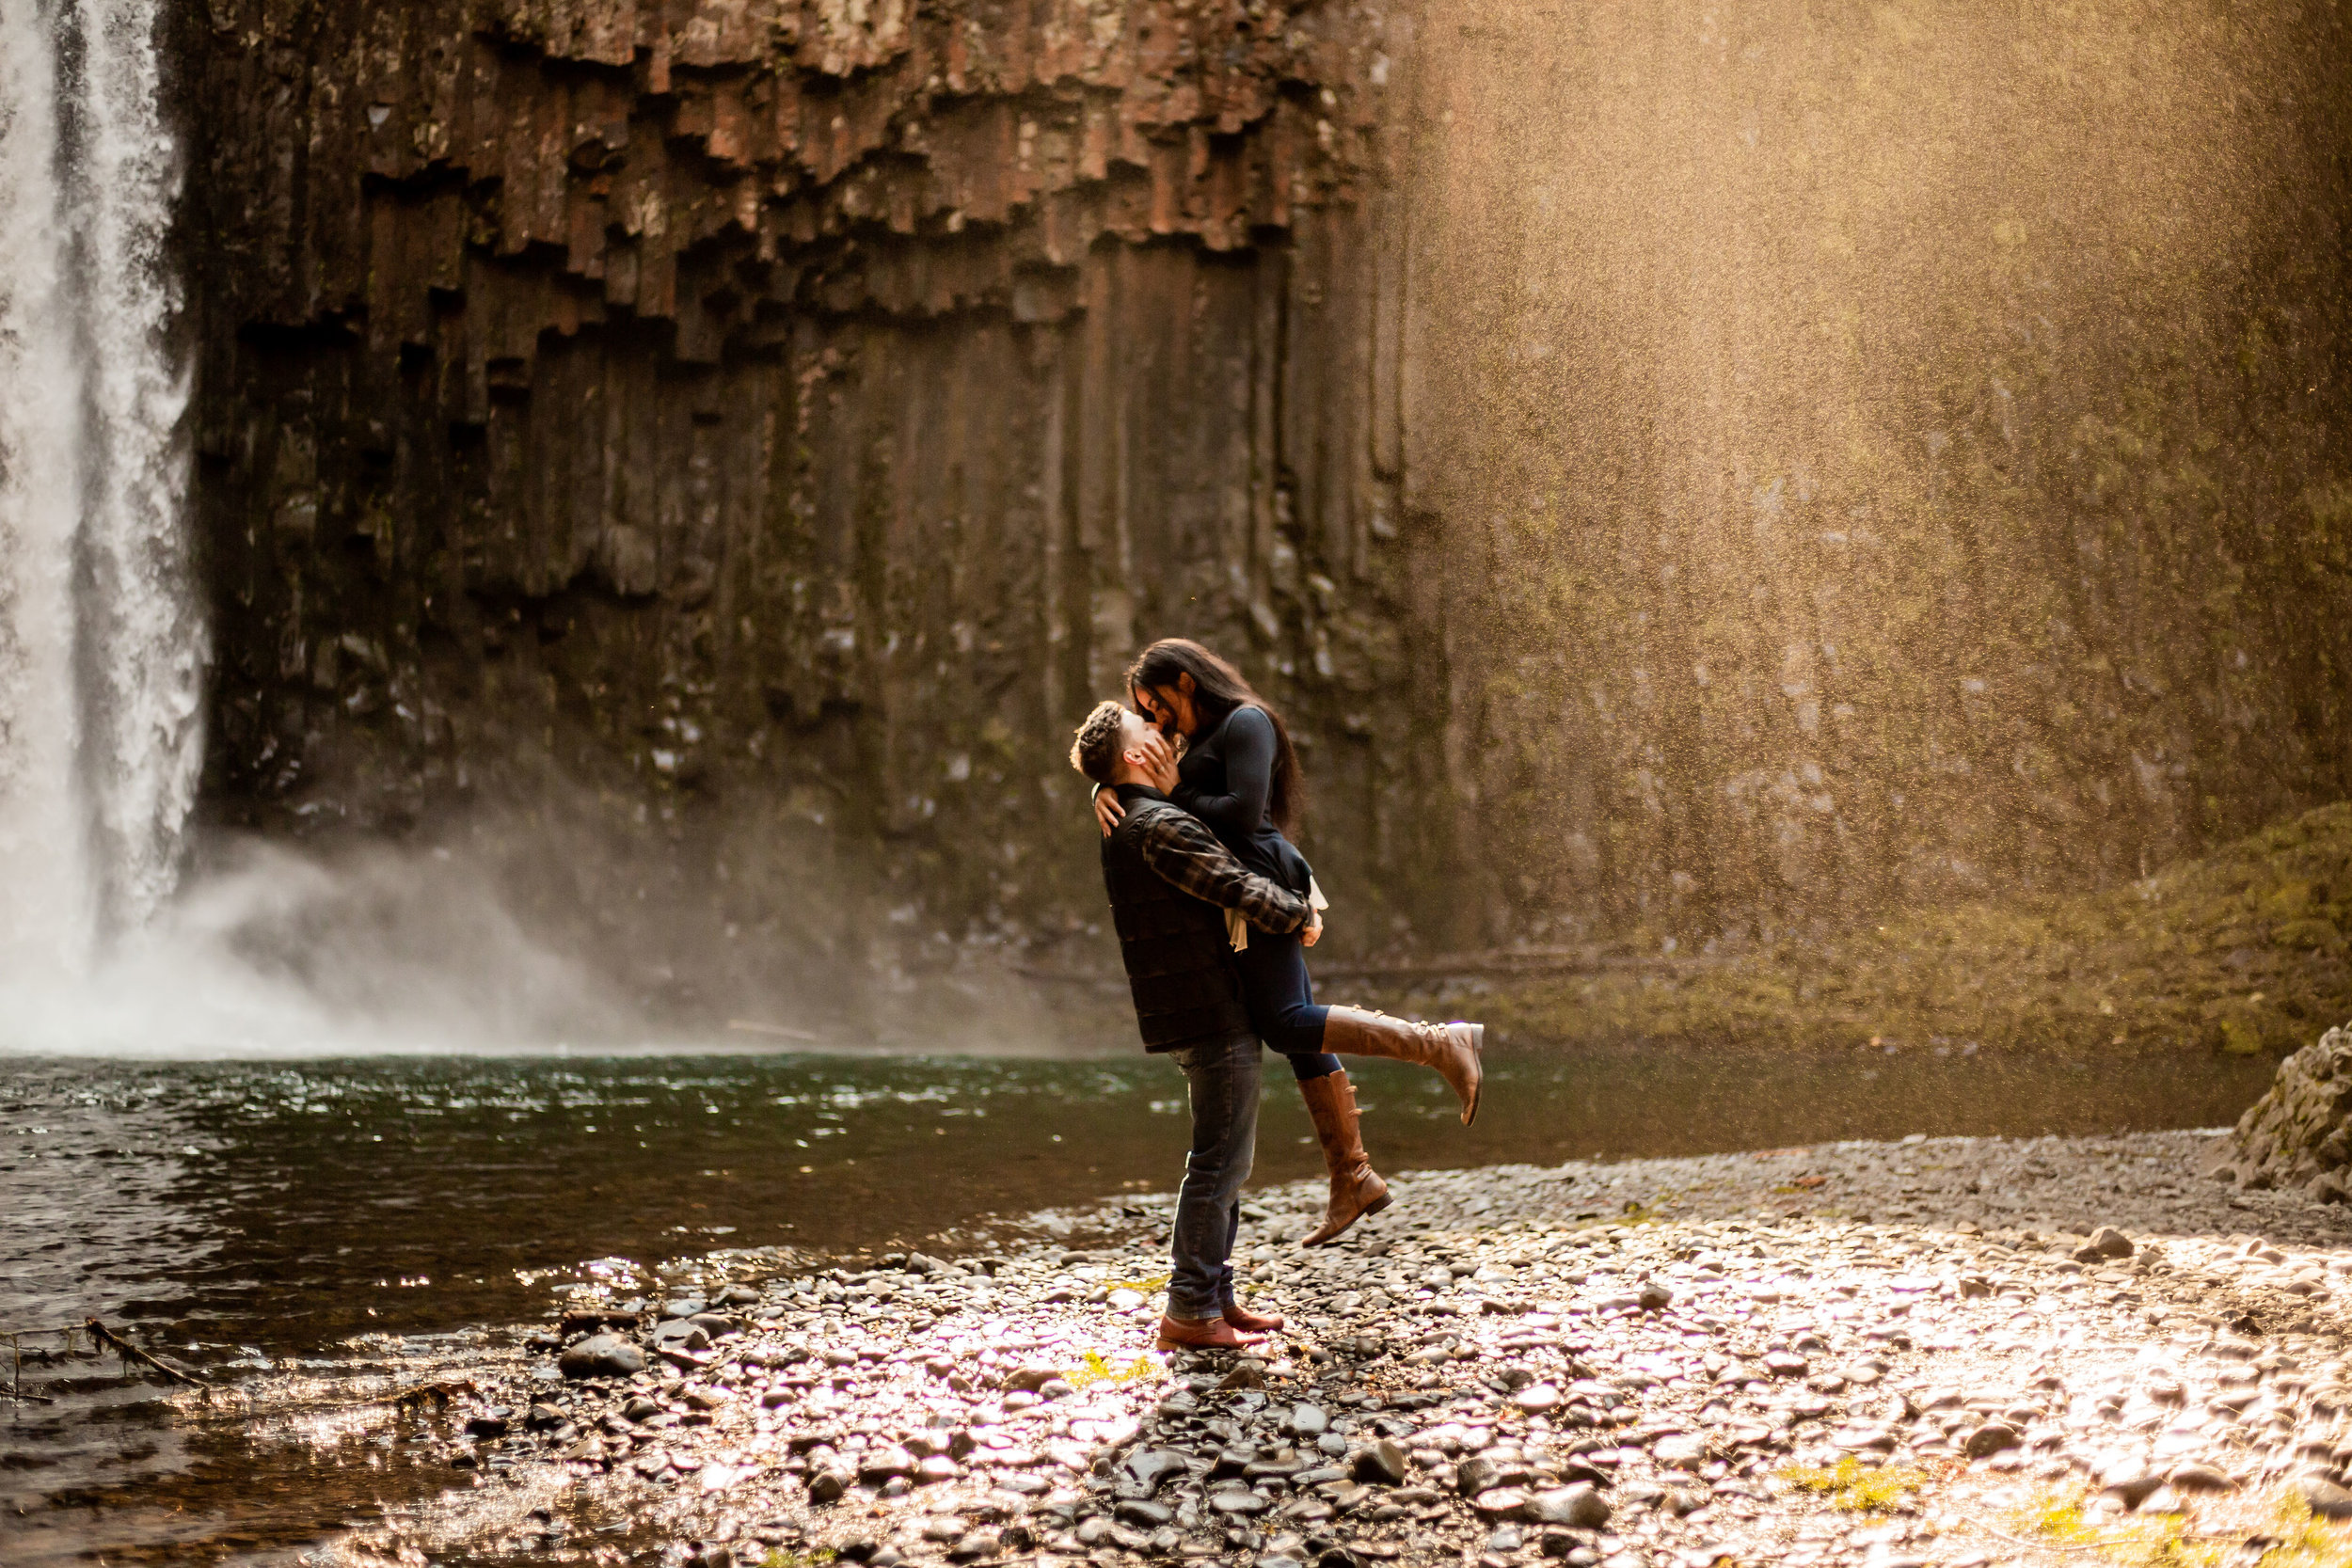 Lex + Nick - Waterfall Session